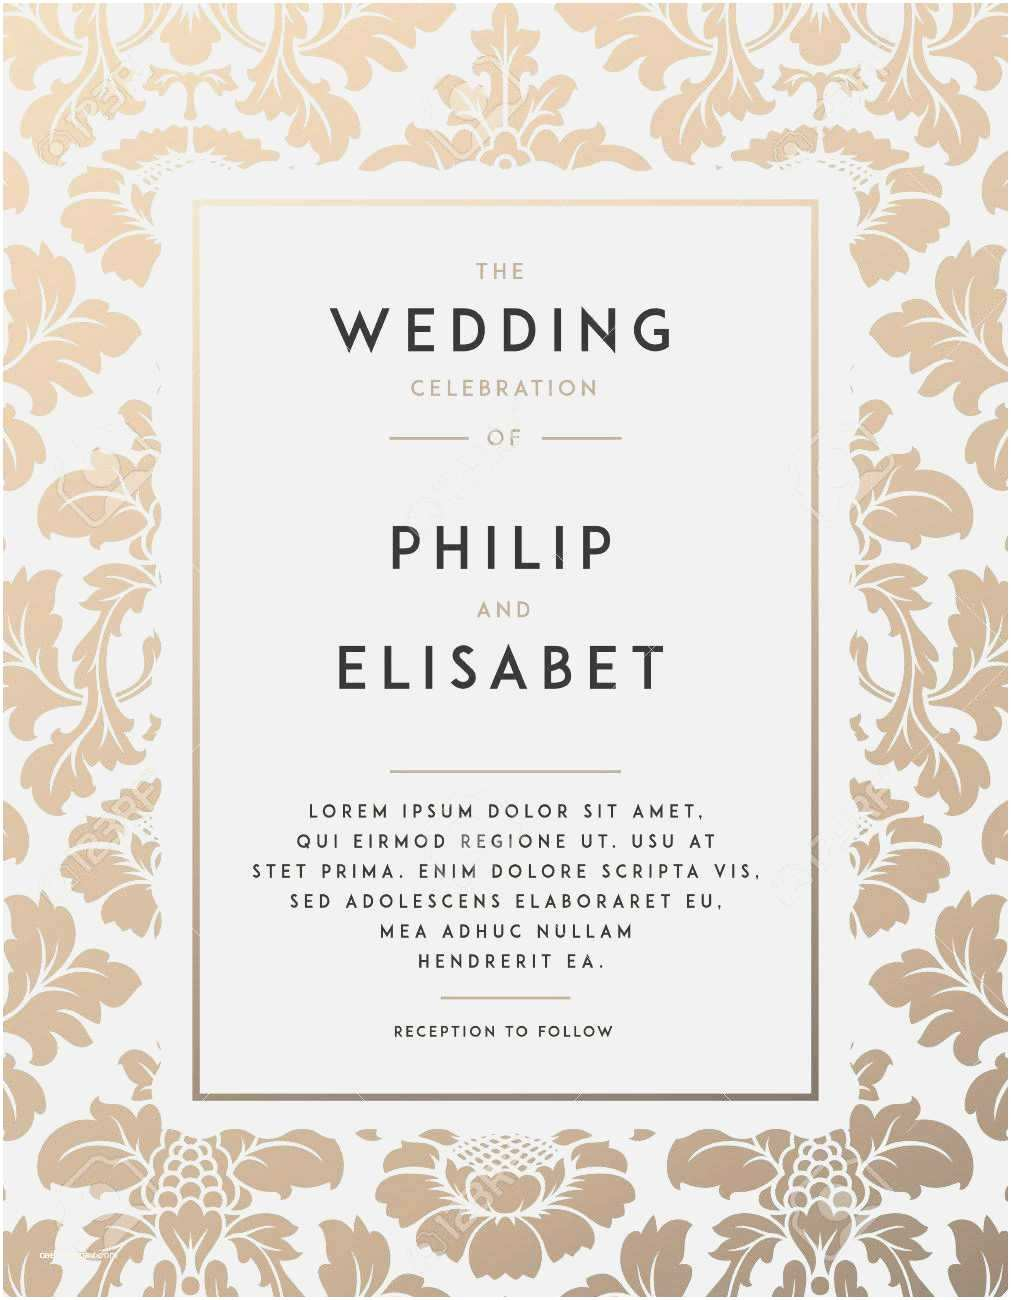 New Wedding Invitations Dorable Vintage Wedding Invitations Templates Sketch